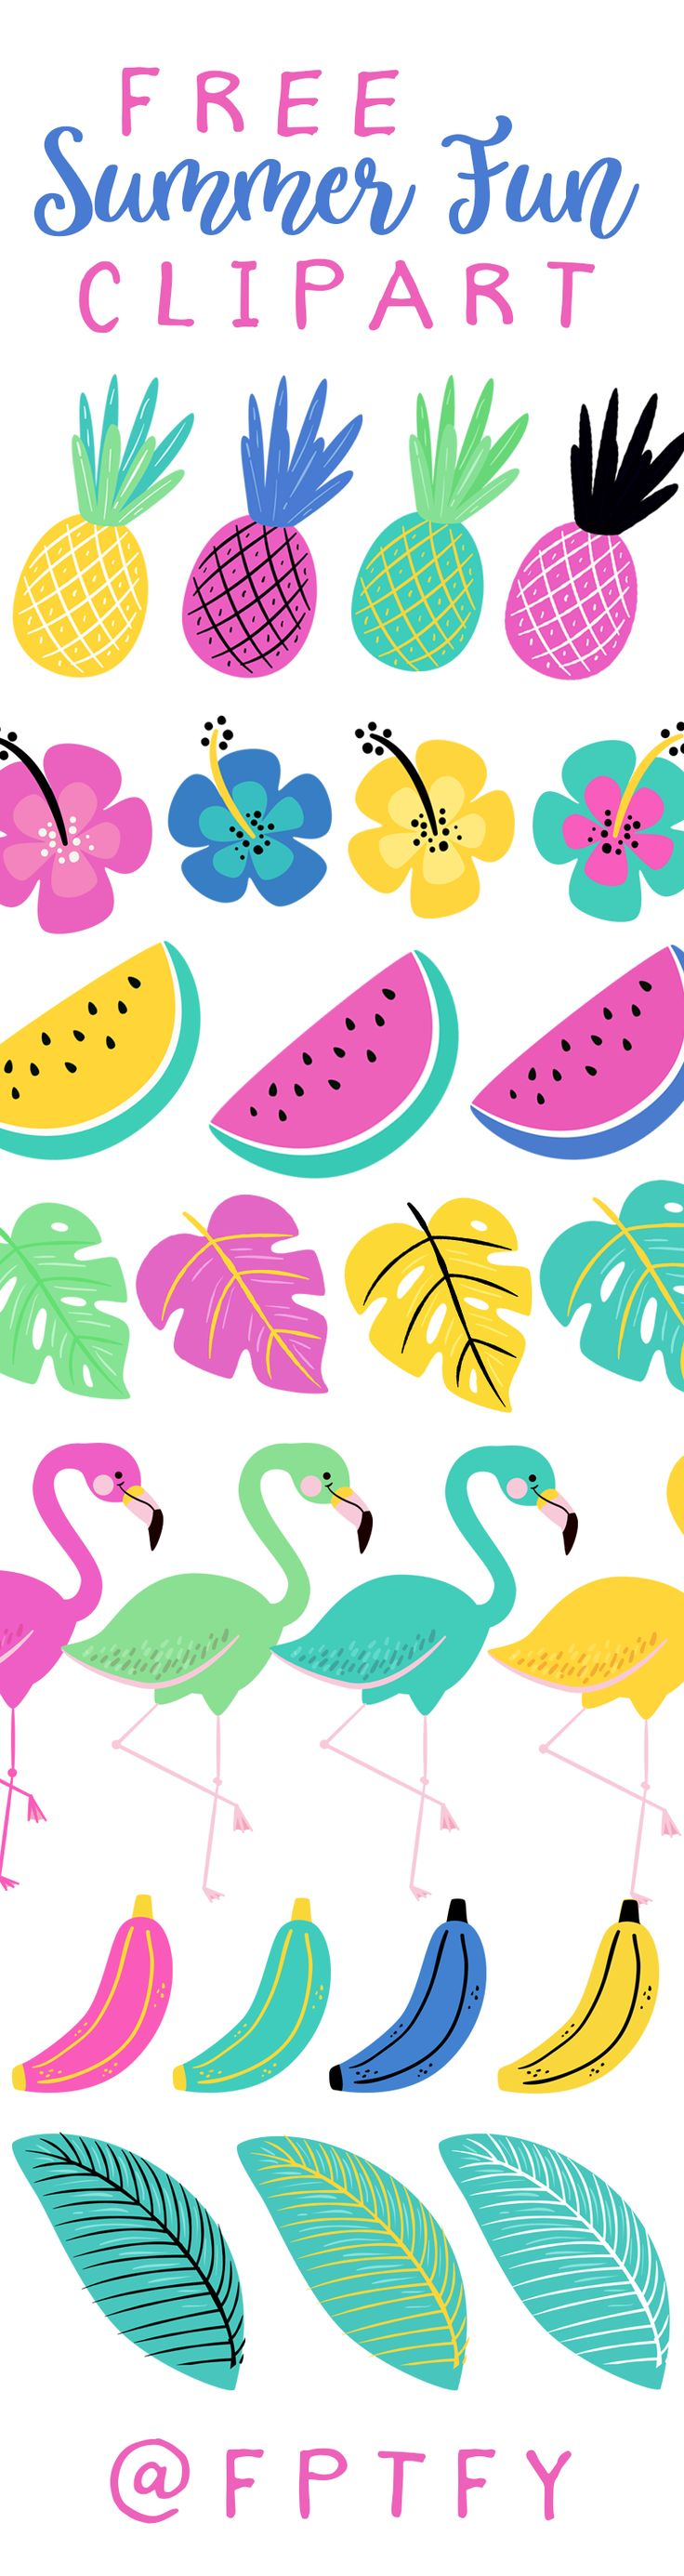 Free Summer Fun Clipart